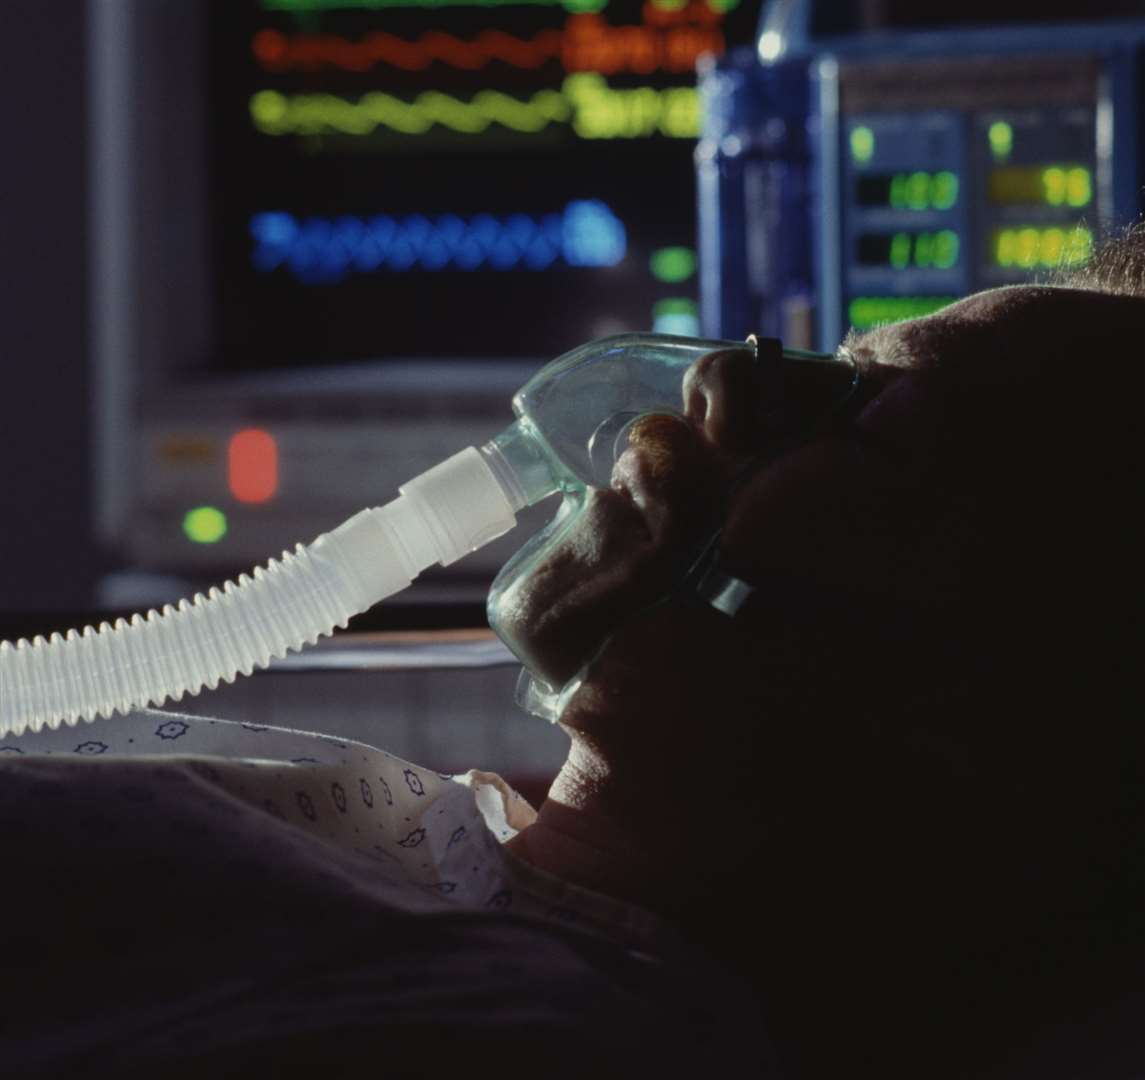 The number of patients requiring a ventilator rose from 0 to 10. Stock image.